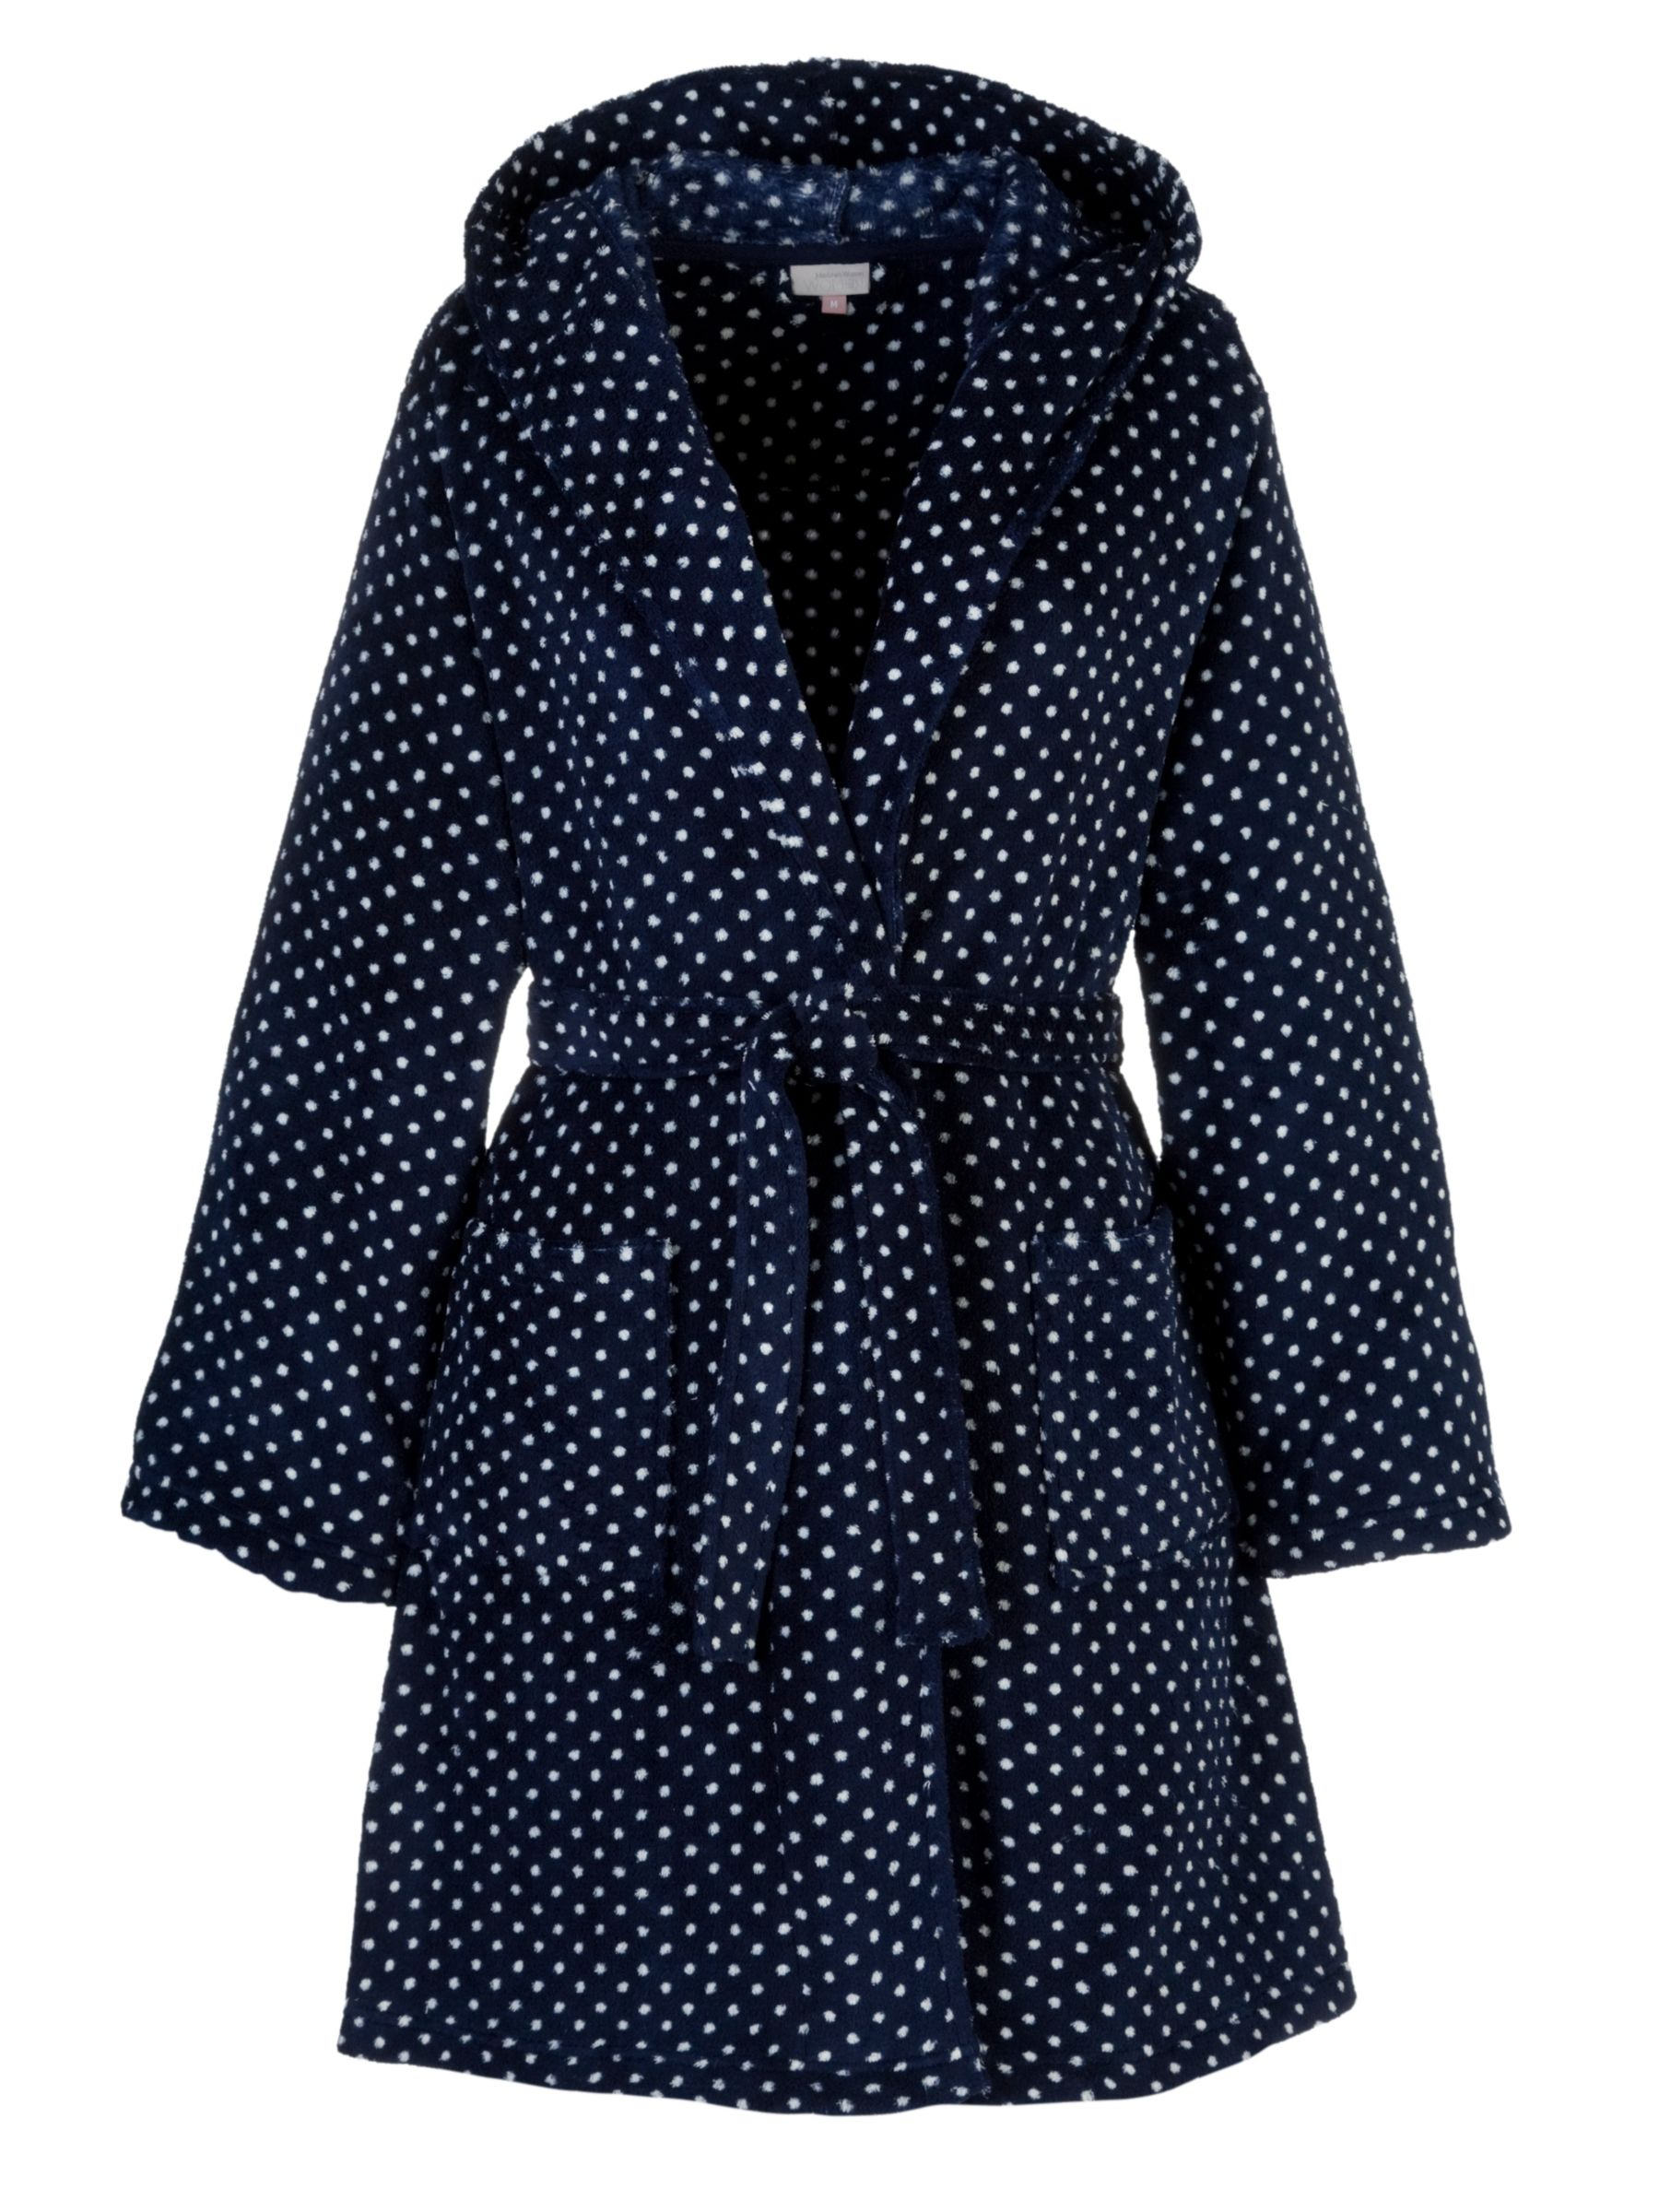 John Lewis Spot Hooded Robe, Blue/White